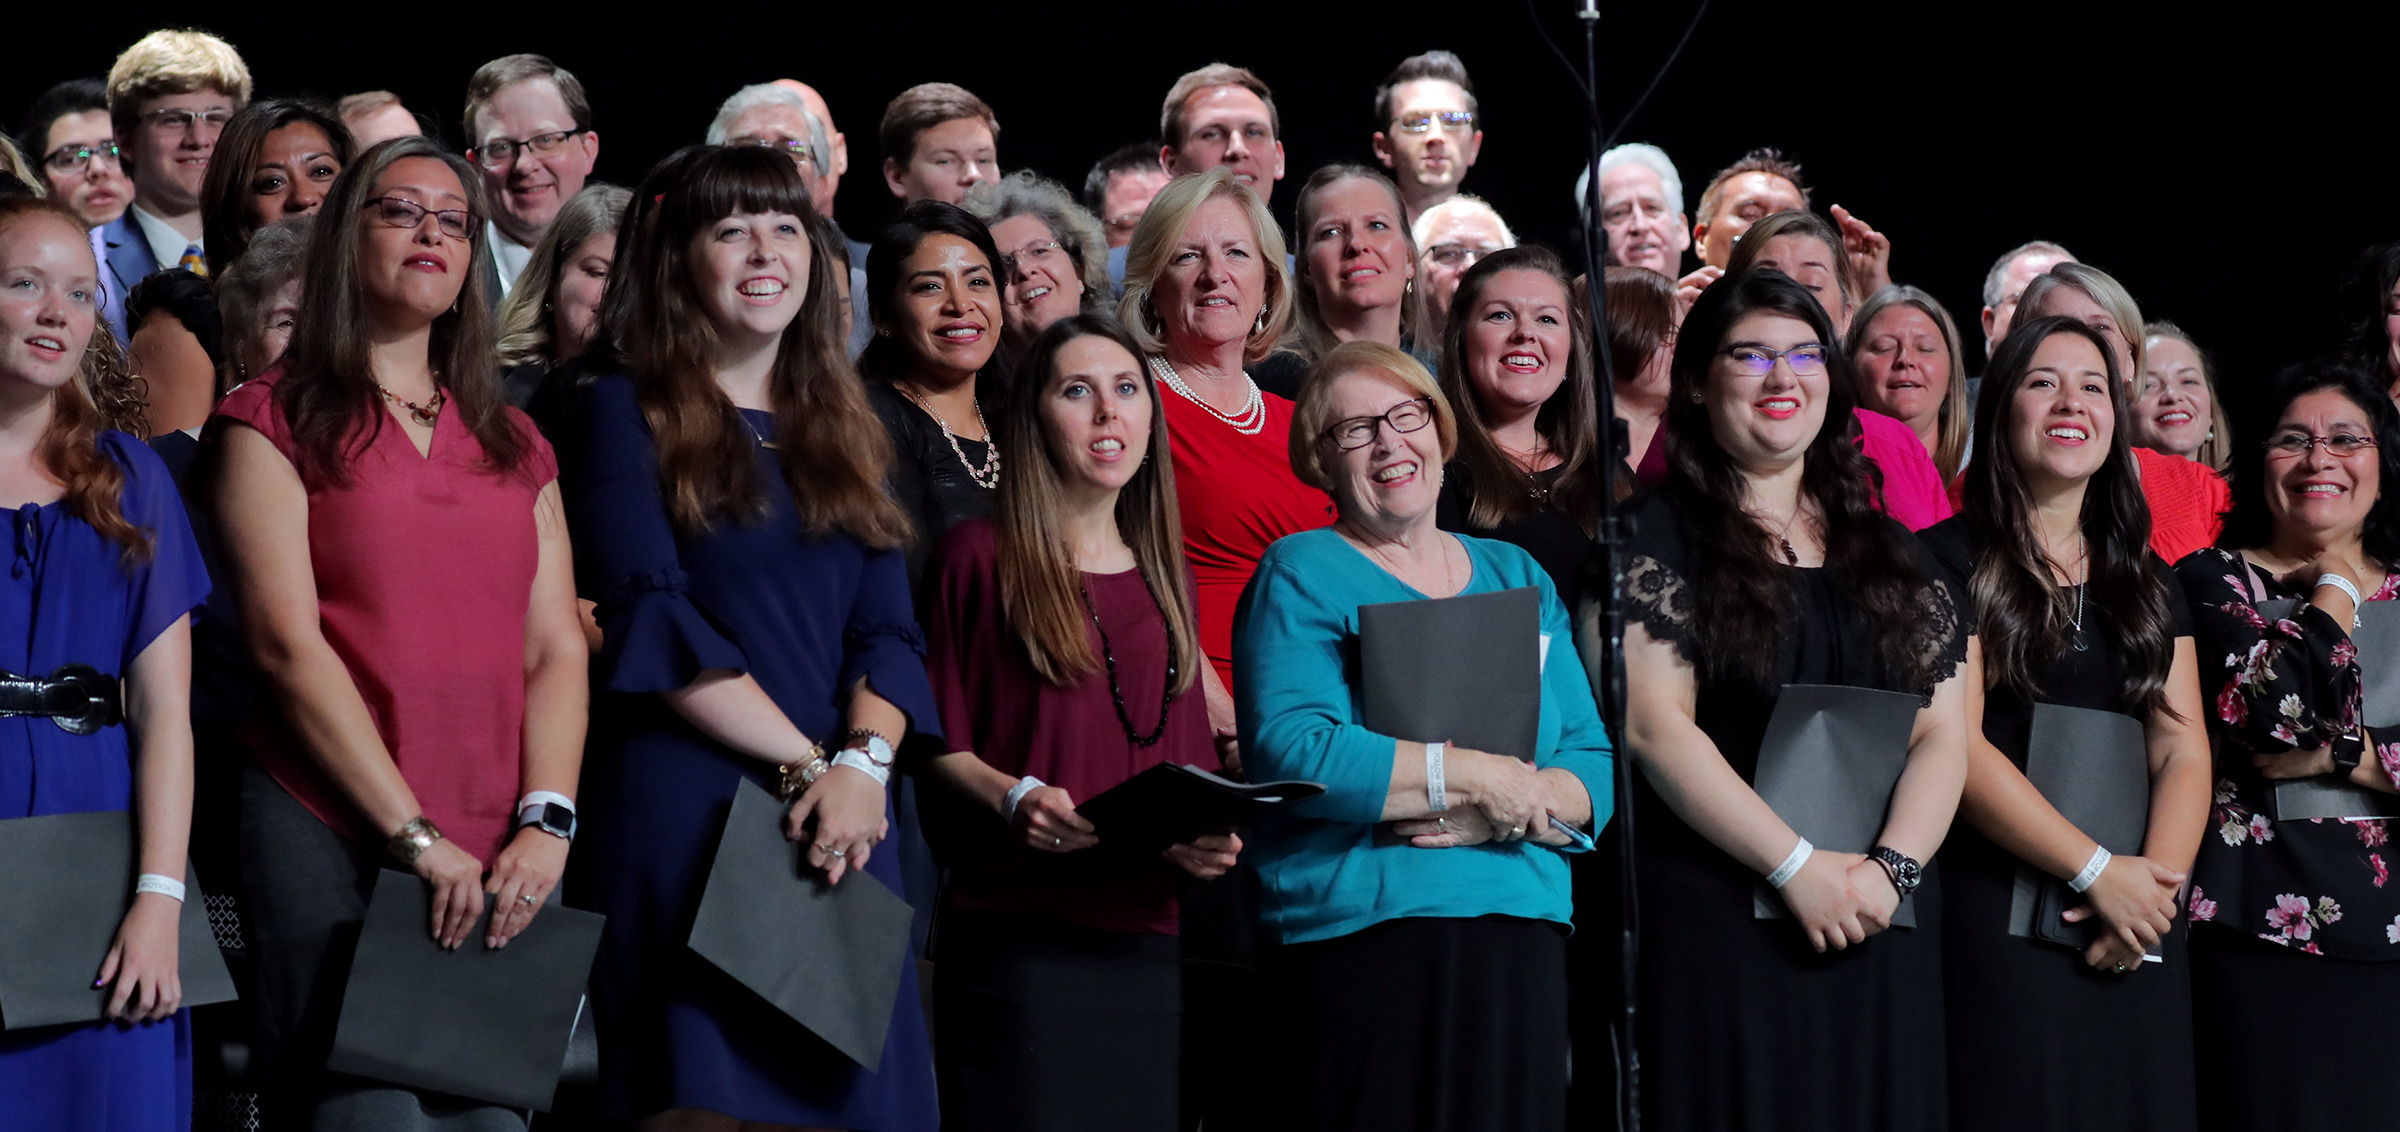 Choir members smile at President Russell M. Nelson and his wife, Sister Wendy Nelson, at the conclusion of the devotional at the Amway Center in Orlando, Florida, on Sunday, June 9, 2019.